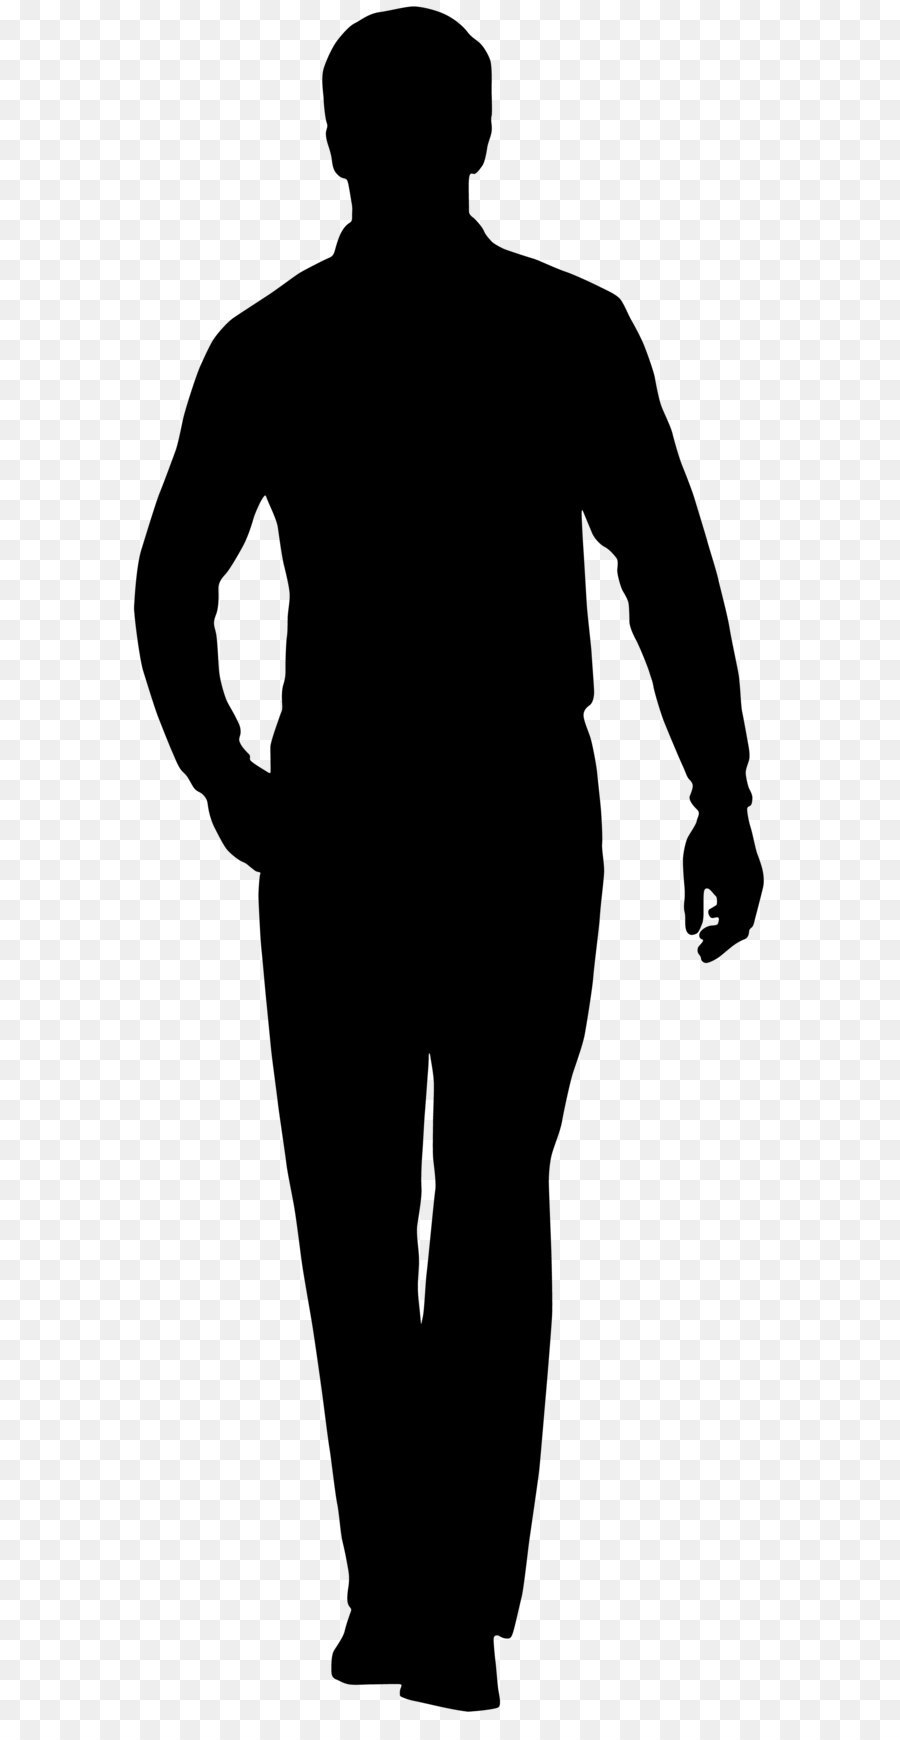 Human Silhouette Png.